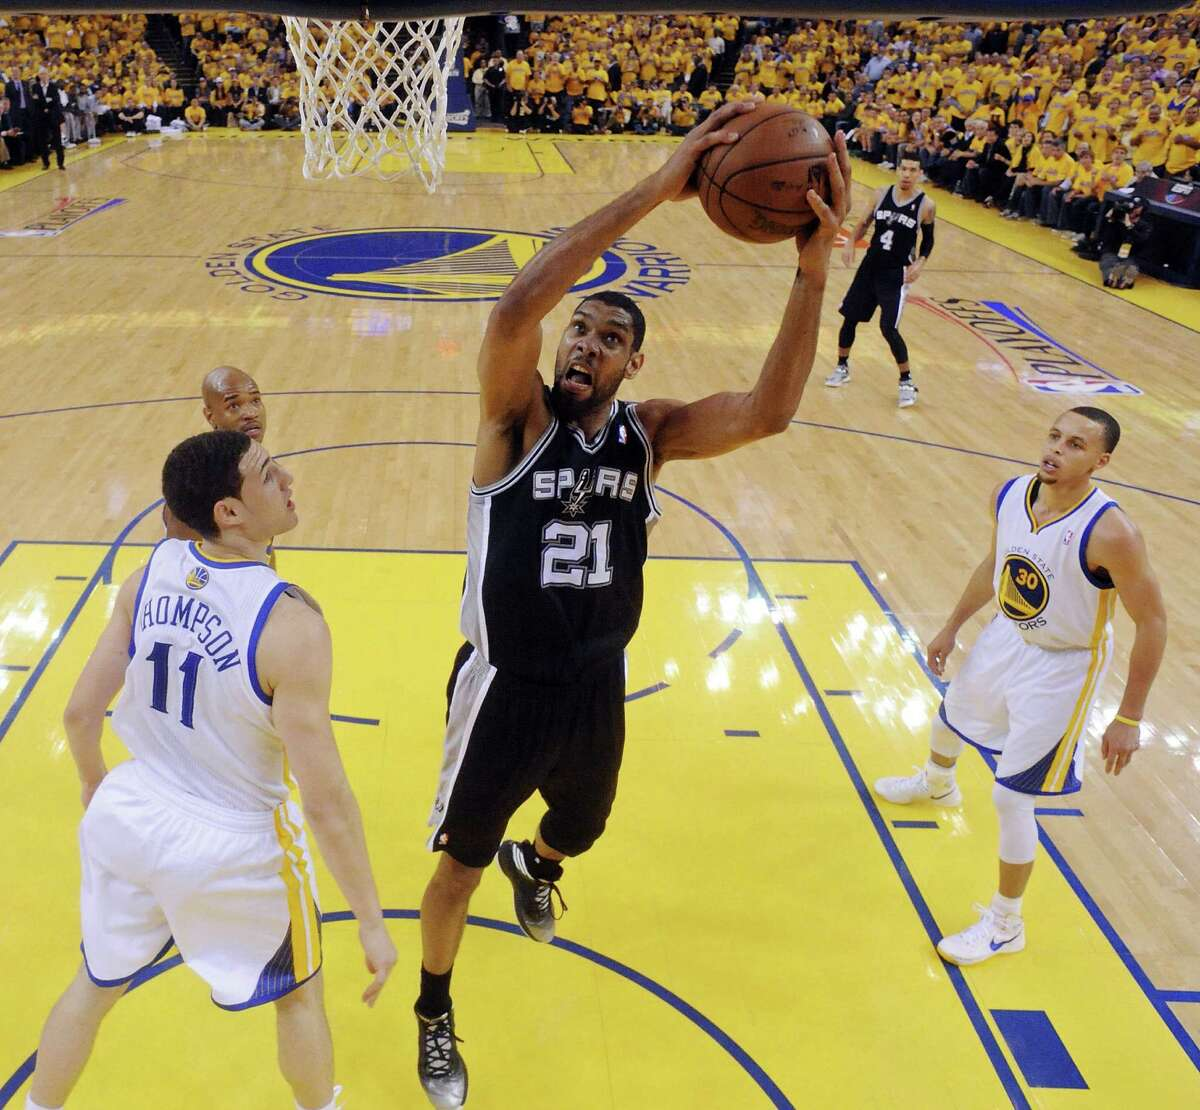 The Spurs' Tim Duncan, getting free for a shot inside between Golden State's Klay Thompson (from left), Jarrett Jack and Stephen Curry, scored 19 points to go with six boards and three blocks in Thursday's win.